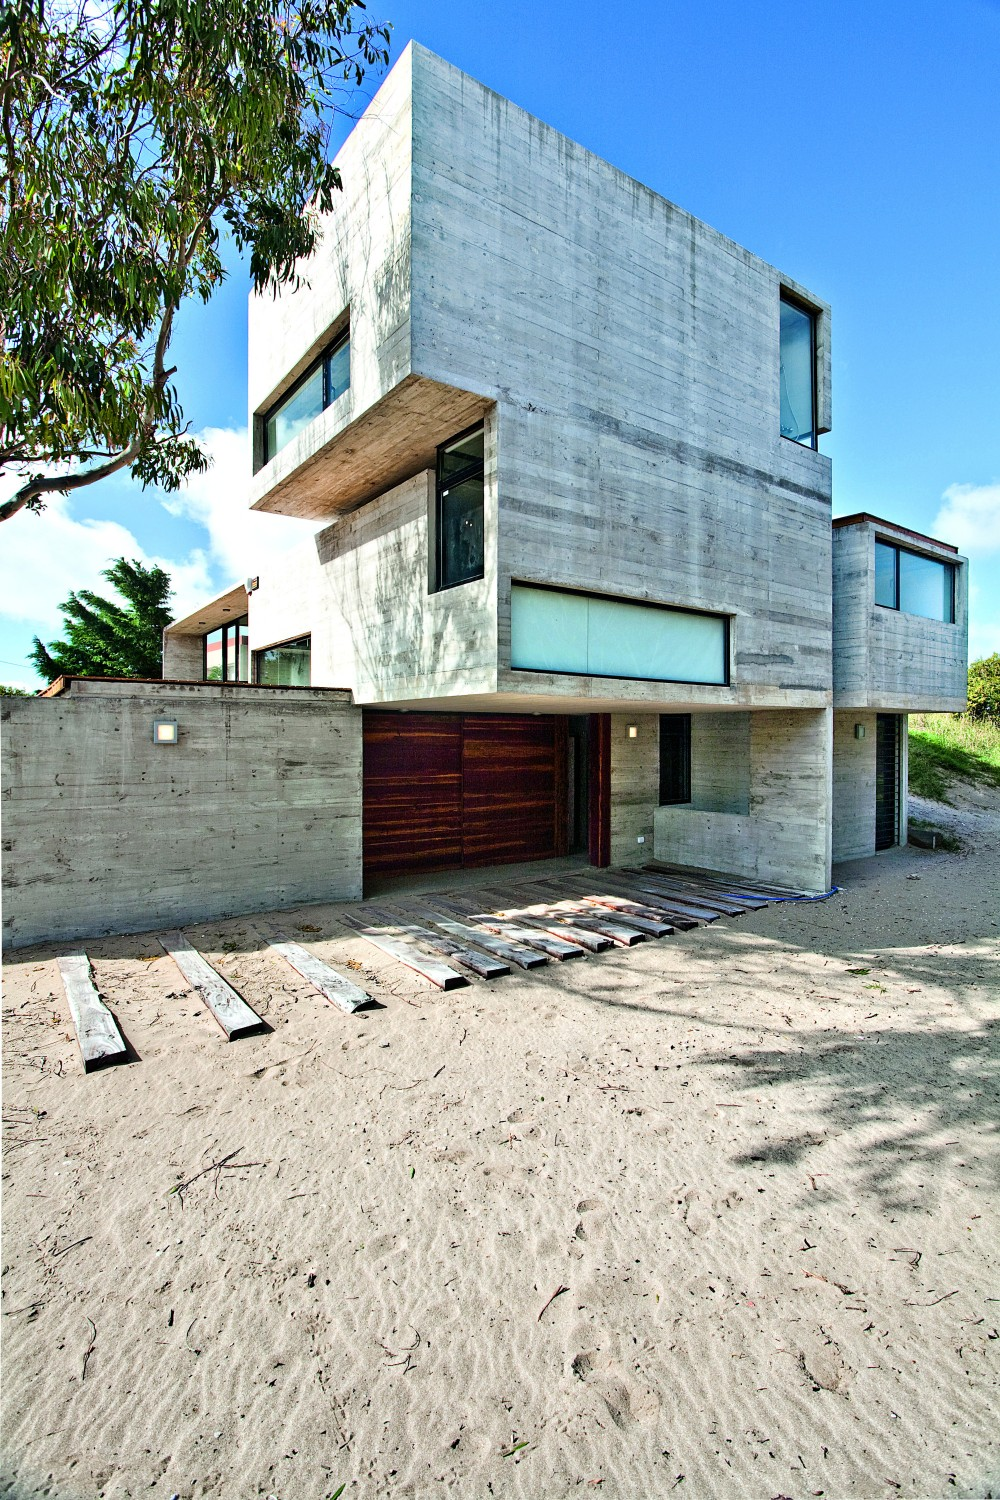 529d344ae8e44e553d00003d_casa-en-la-playa-bak-architects_00265413-1000x1500